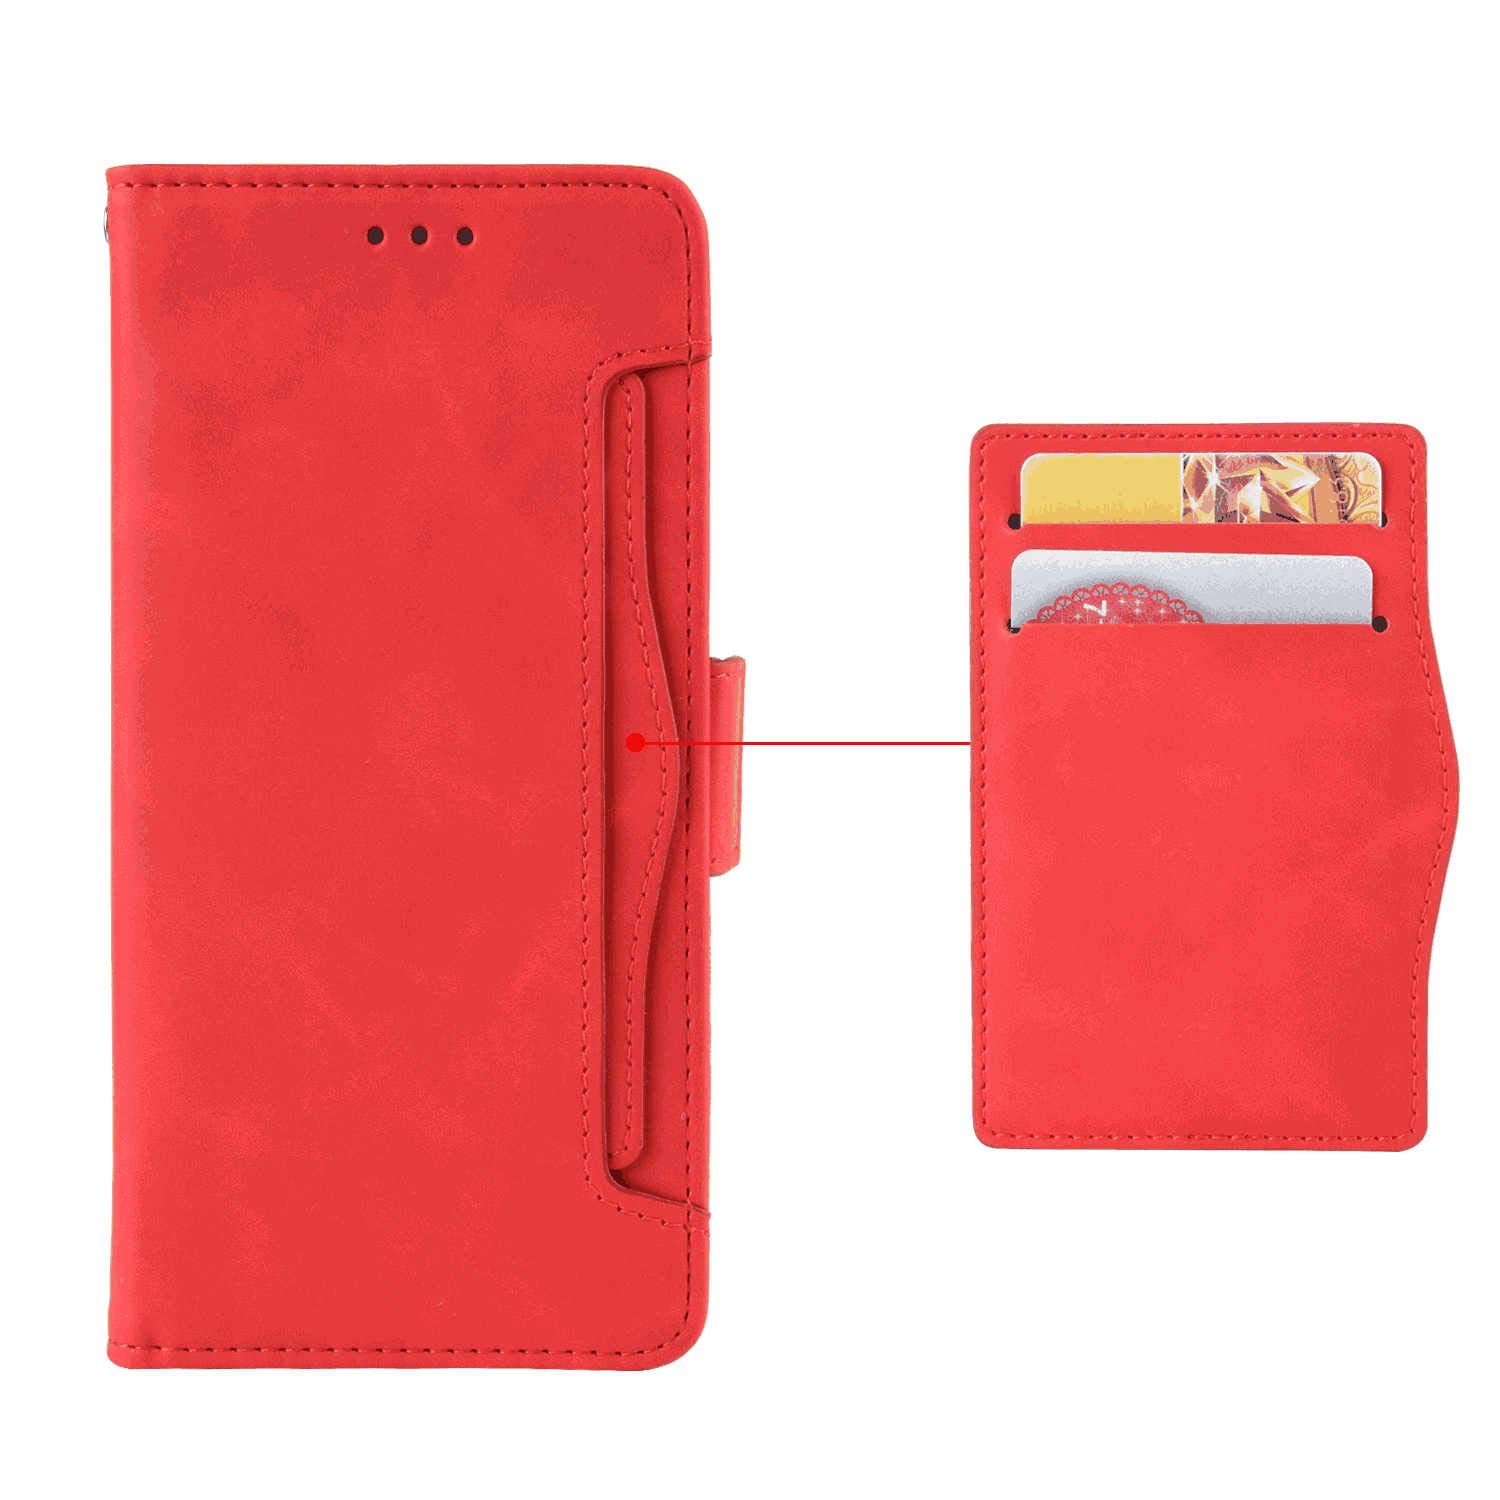 Cover for Samsung Galaxy S10E Leather Extra-Durable Business Card Holders Kickstand Wallet Cover with Free Waterproof-Bag Classical Samsung Galaxy S10E Flip Case